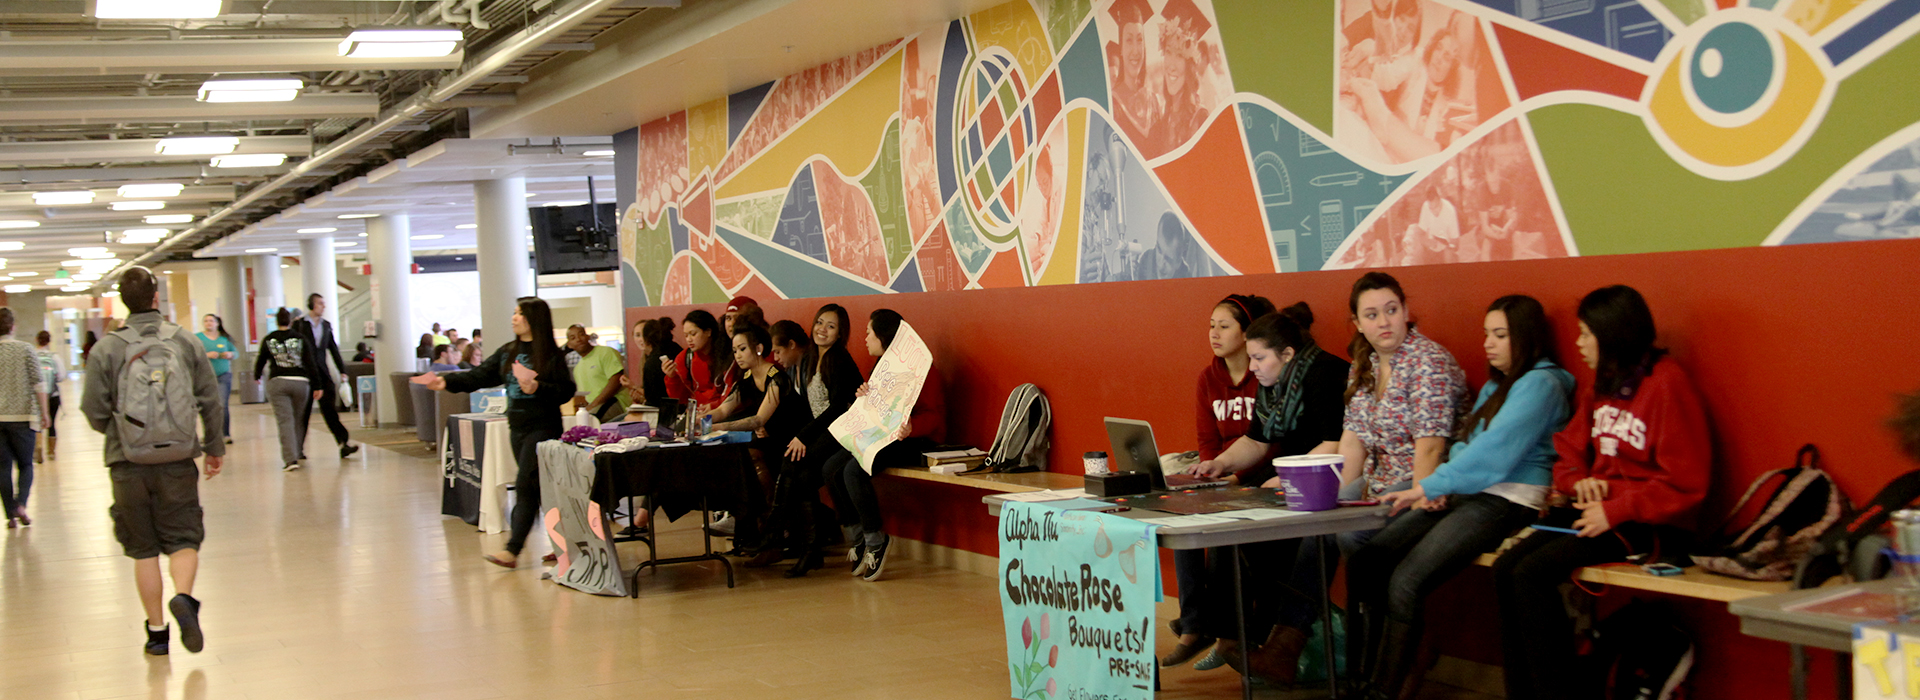 Students tabling in the Compton Union Building